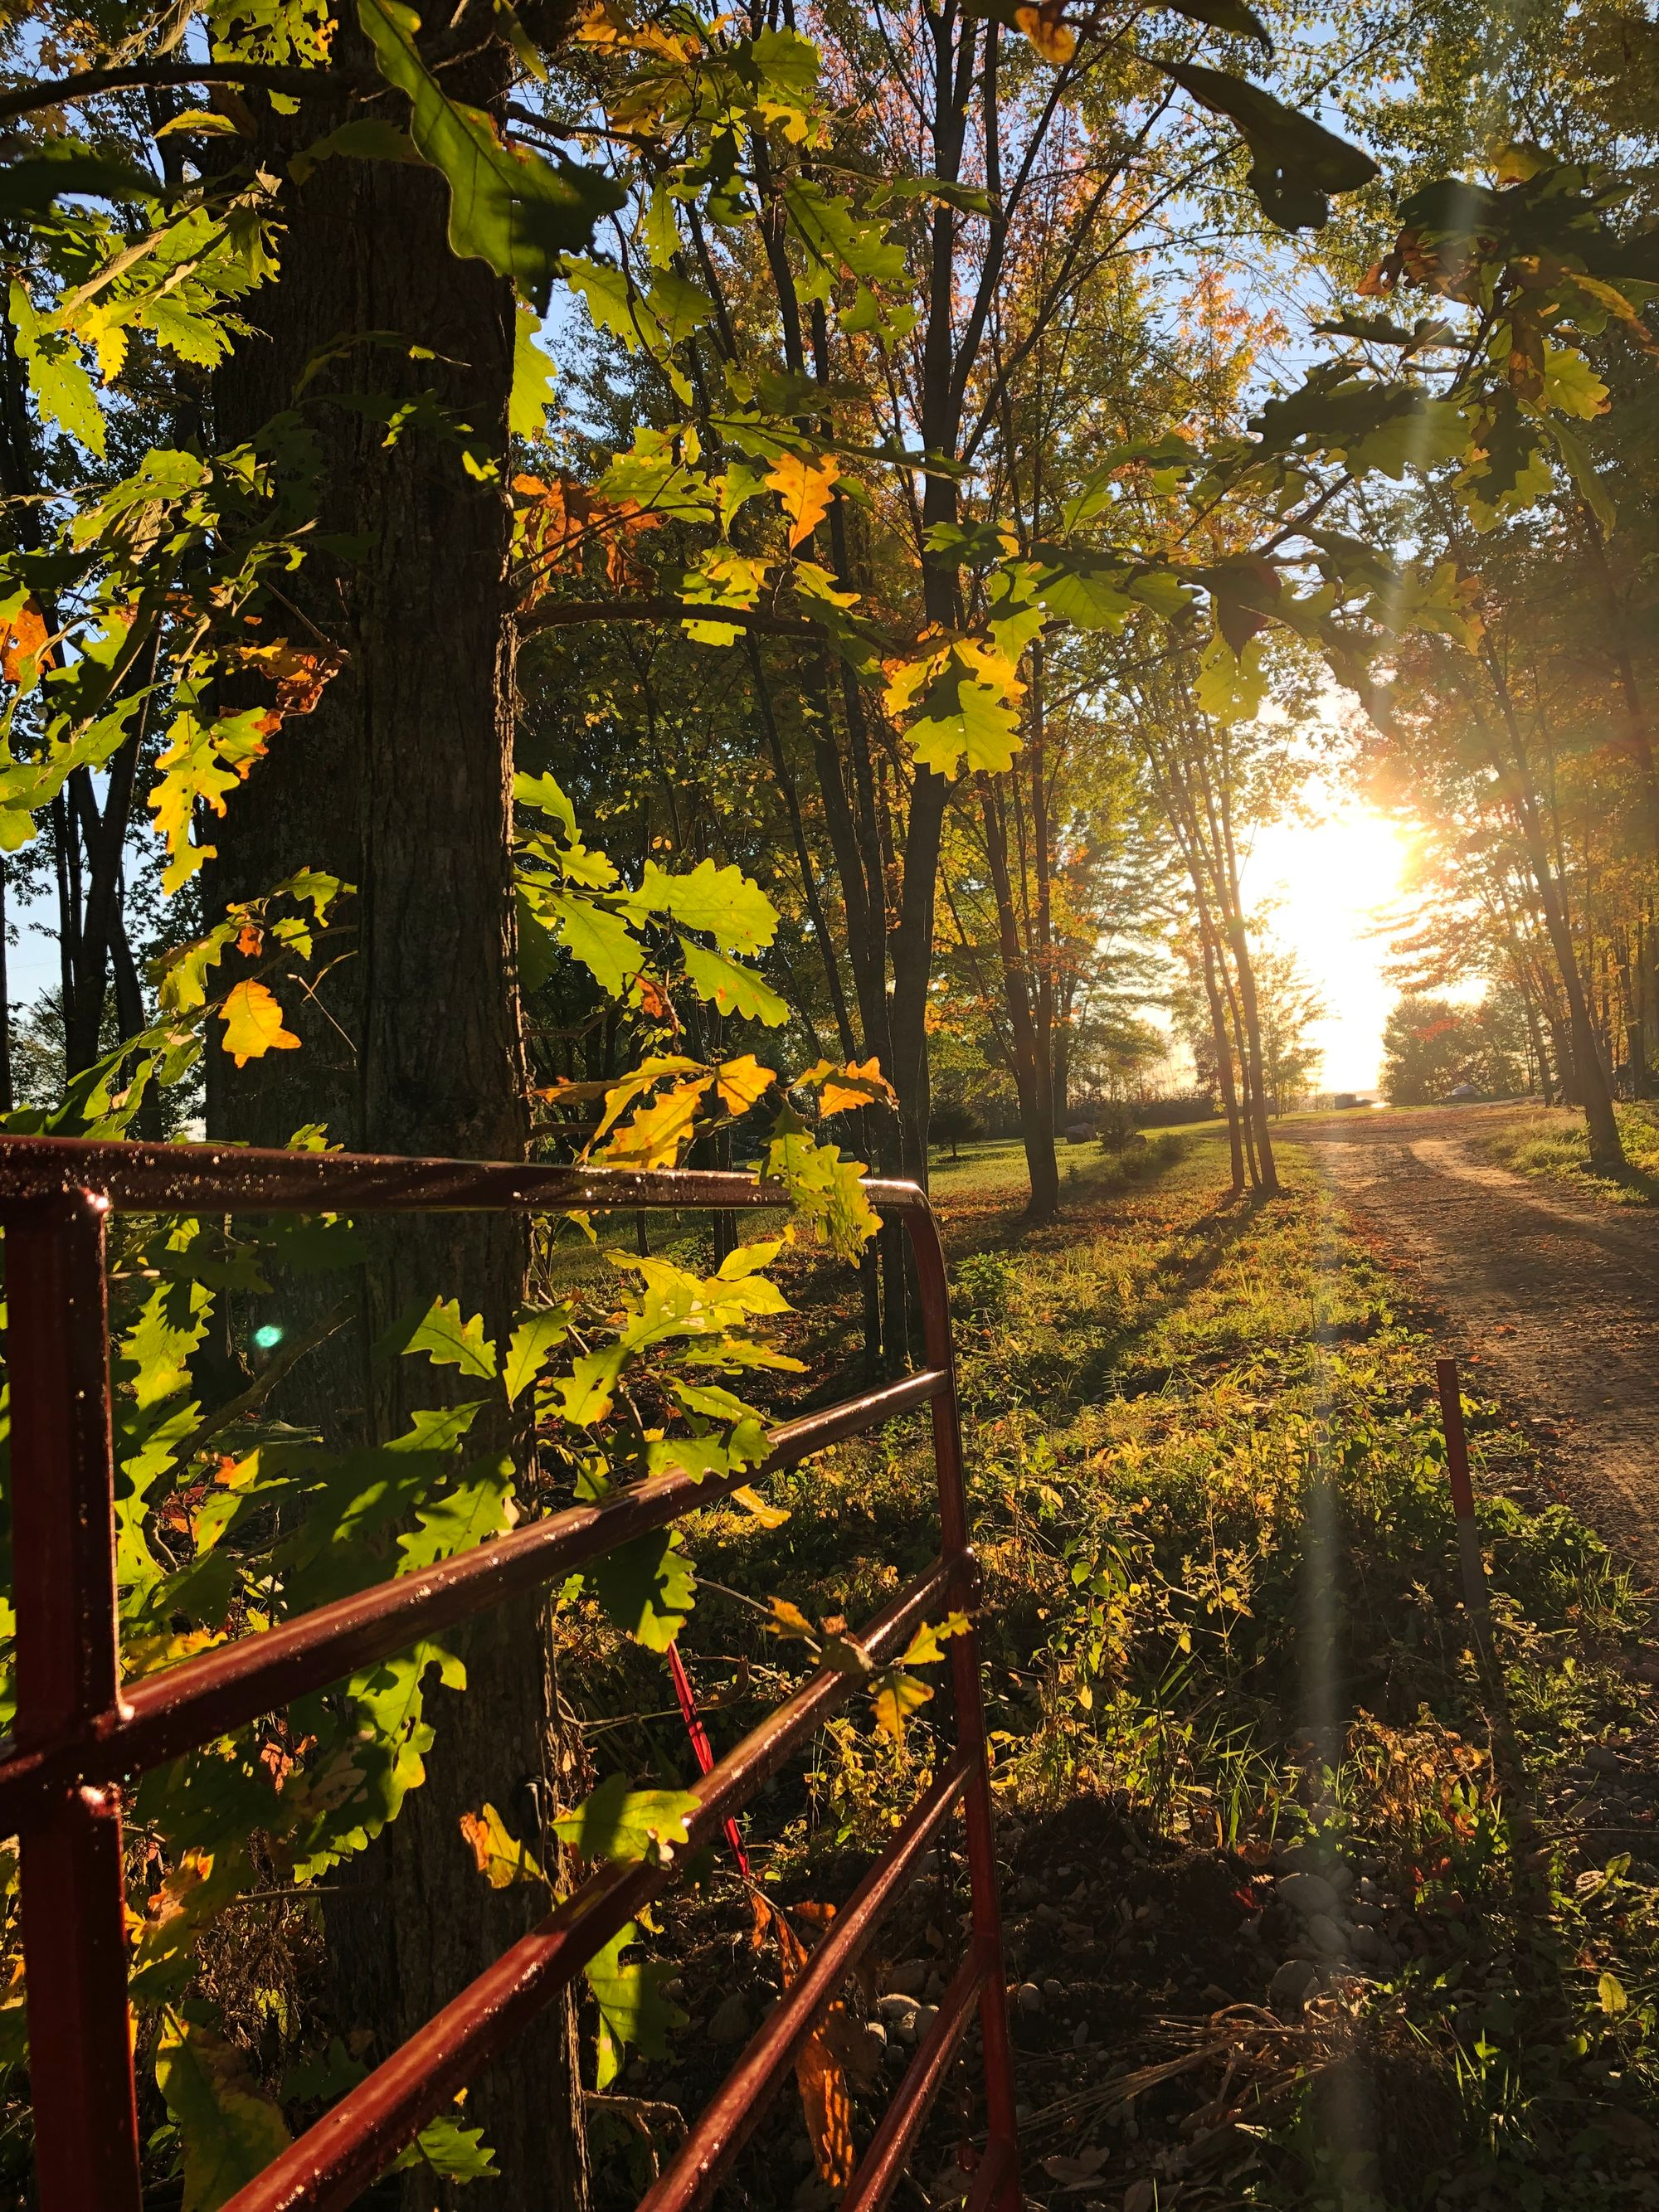 A red metal gate leans against a slender oak tree, its lobed leaves lit by the rays of a setting sun in the distance. A dirt path leads towards the sun, cutting through grasses and further distant trees. Rays of light stream visibly towards the camera; the effect is warm and evocative of early October in Ontario.